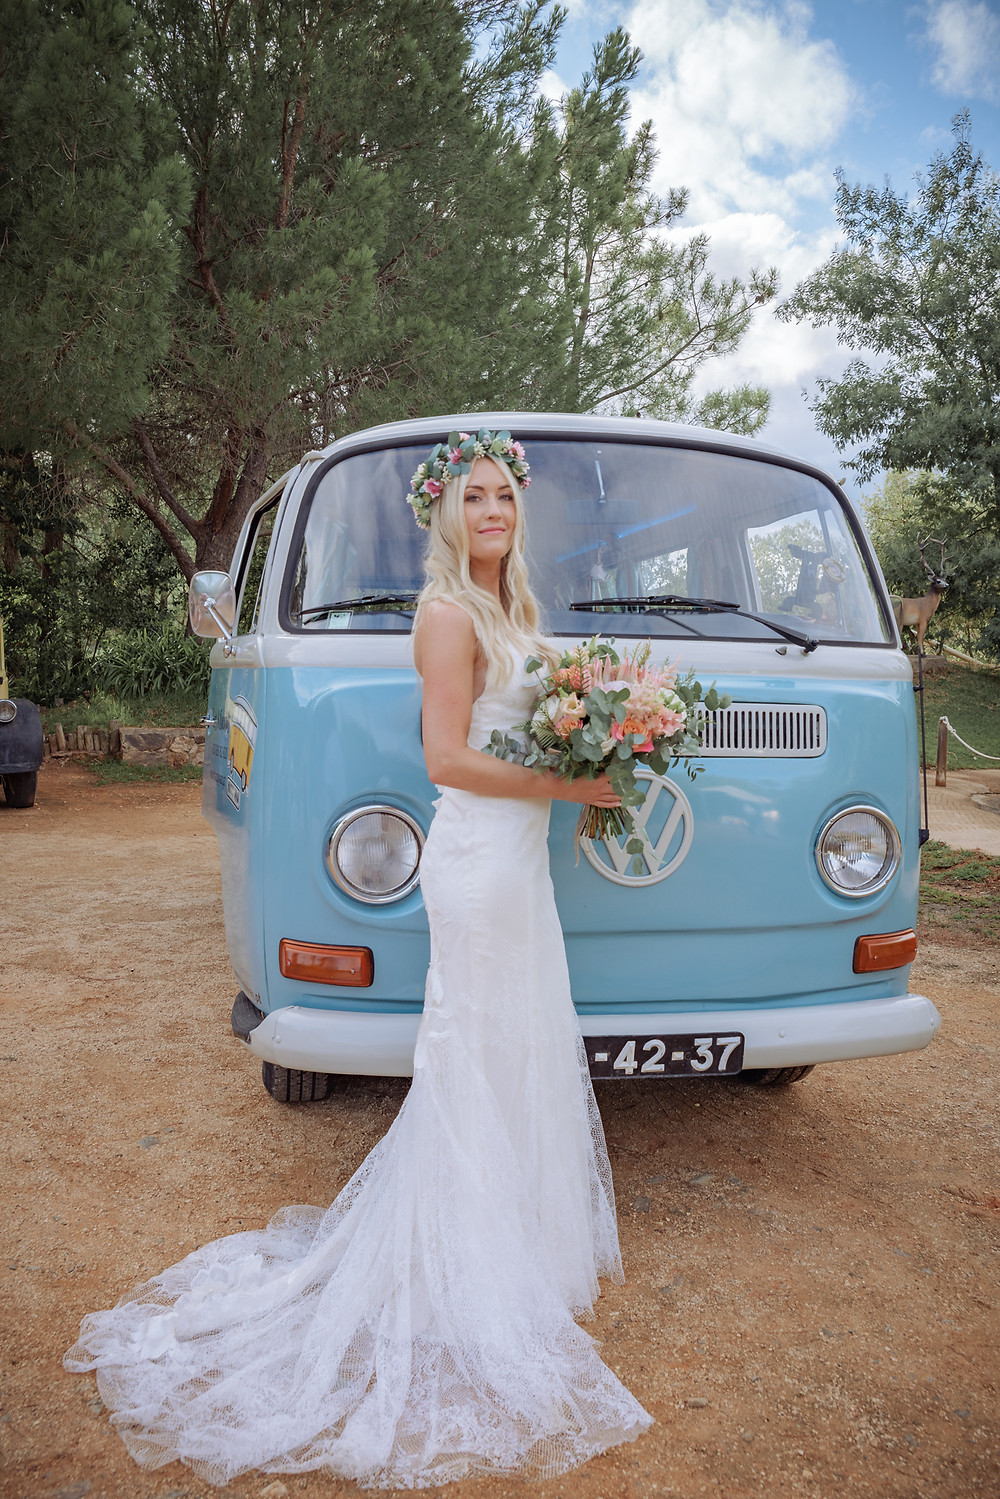 Beautiful wedding bride standing in front of a VW Camper van holding a wedding bouquet of protea flowers